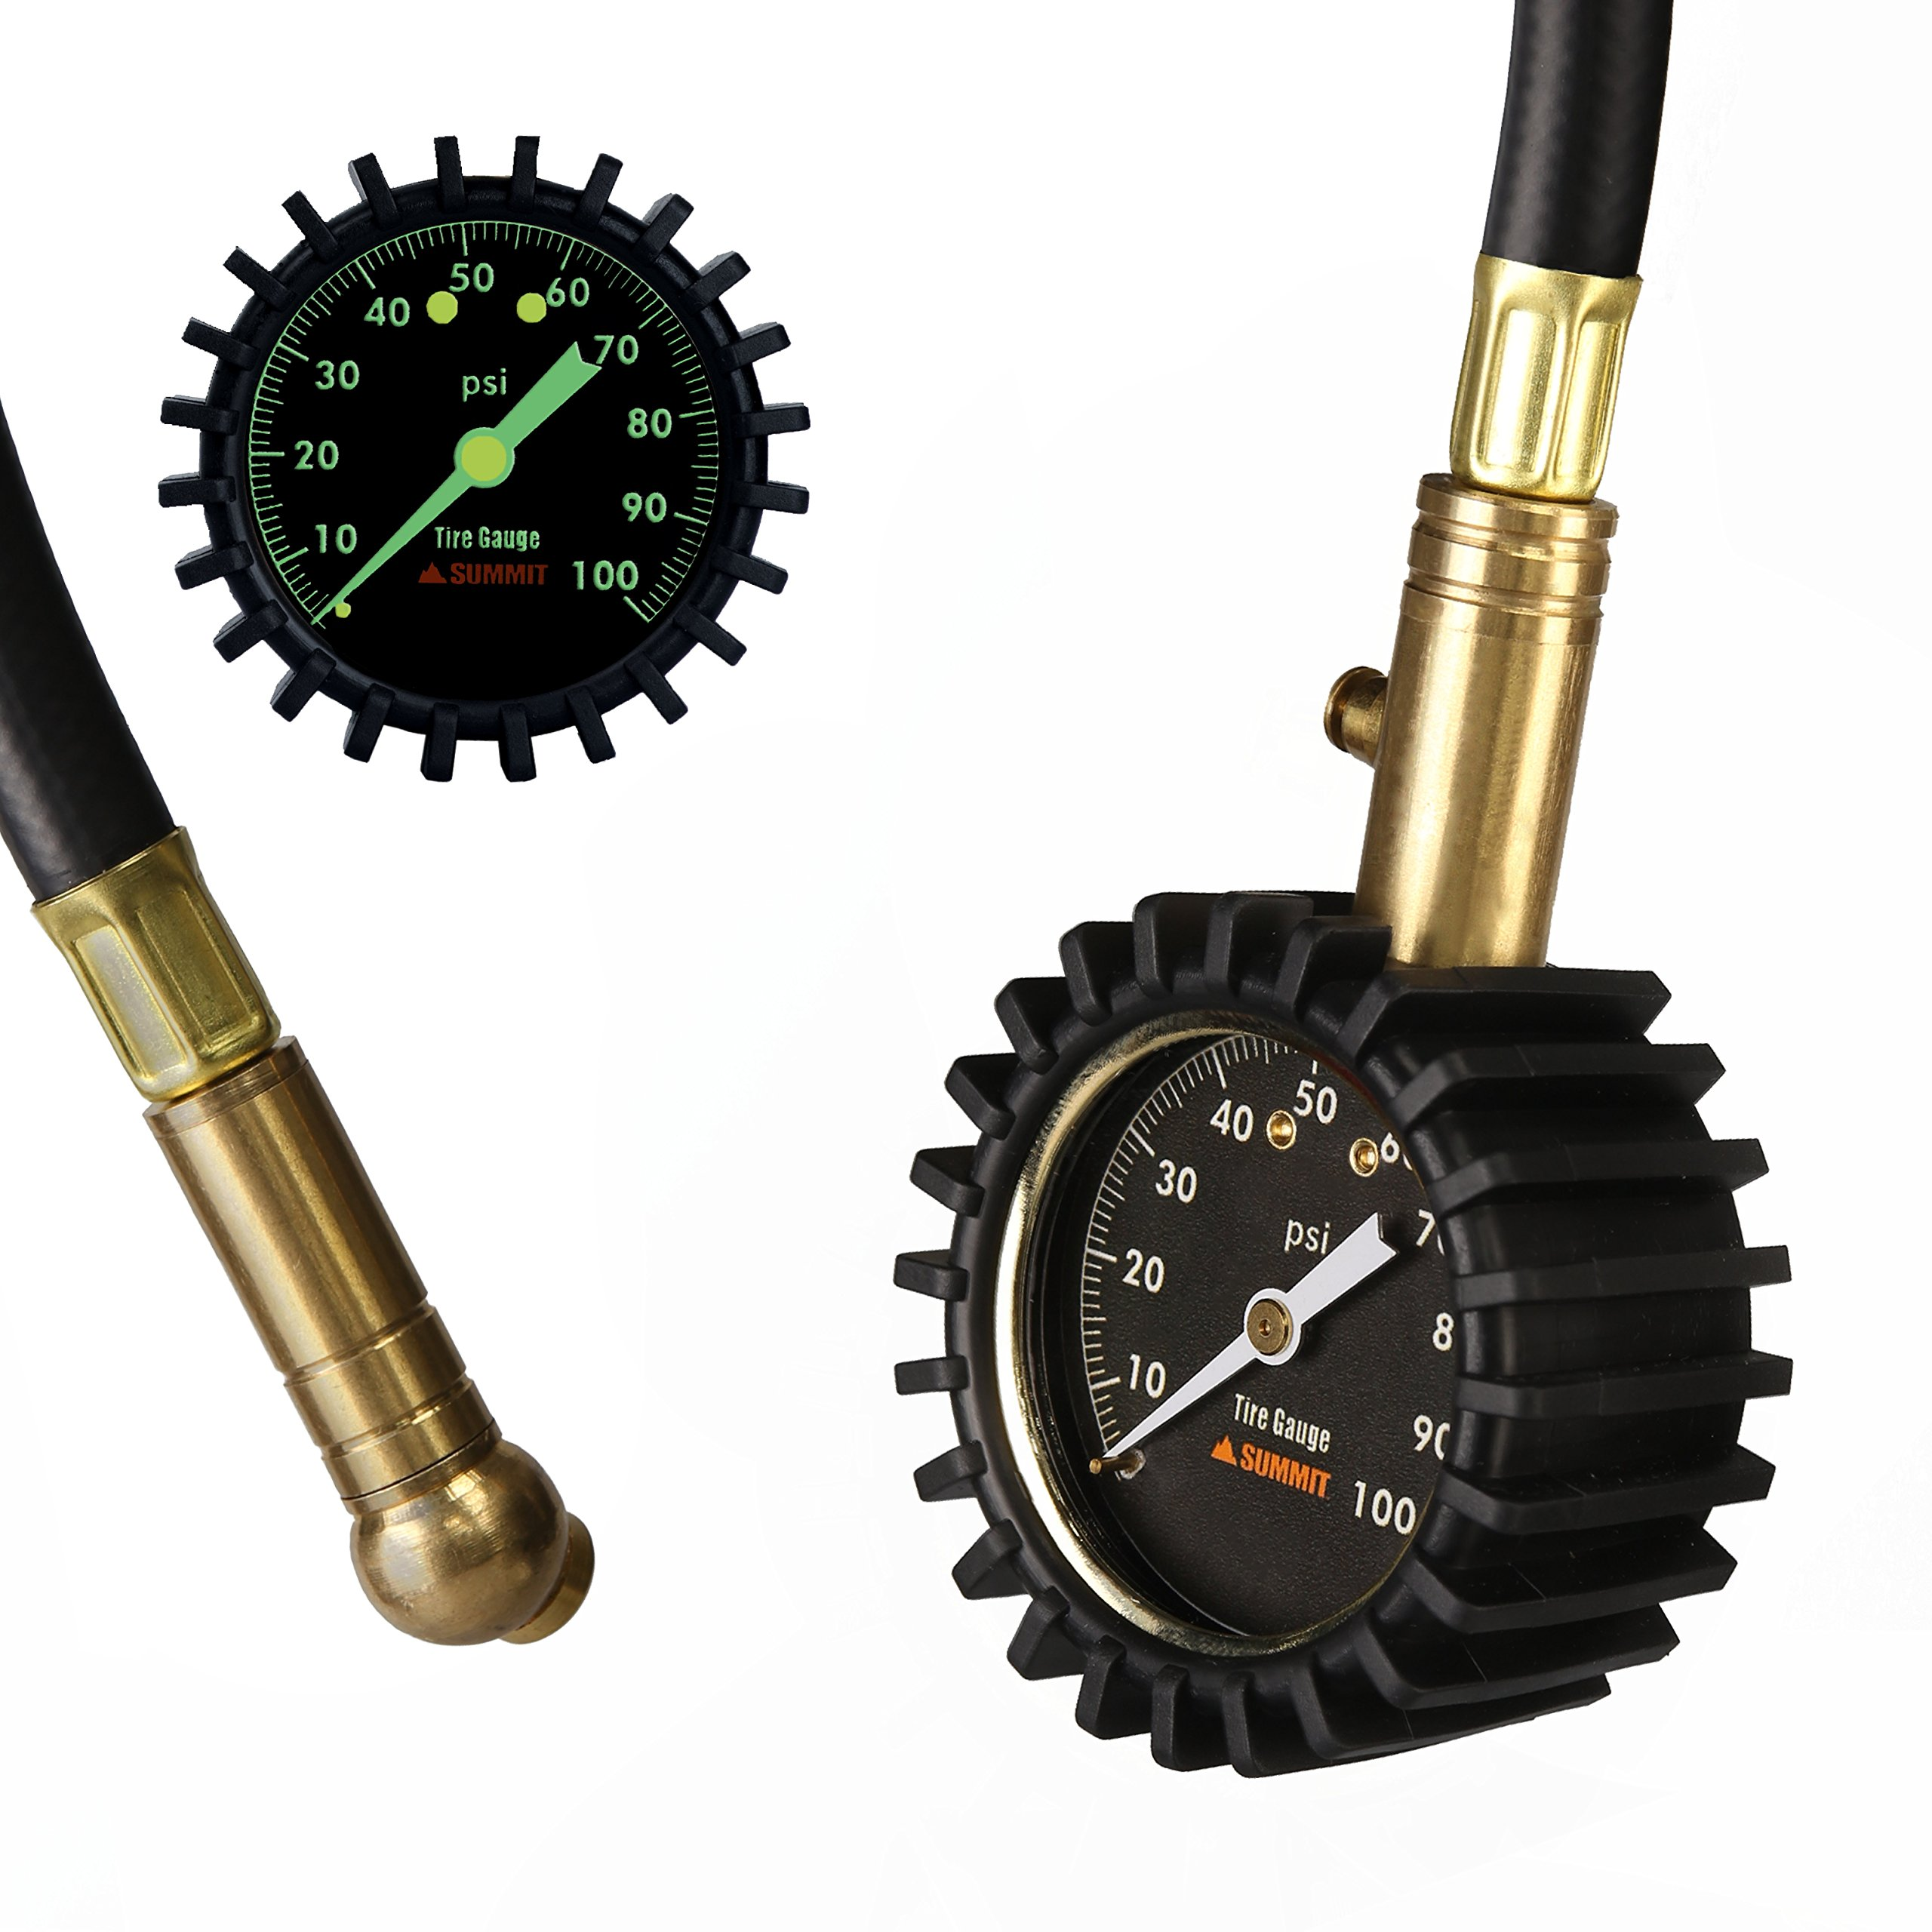 Summit Tools Heavy Duty Tire Pressure Gauge with Hold Valve (0-100 PSI) - ANSI B40.1 Certified Accuracy with Large 2'' Glow Dial for Car, Truck, Bike, Motorcycle, RV and More by Summit Tools